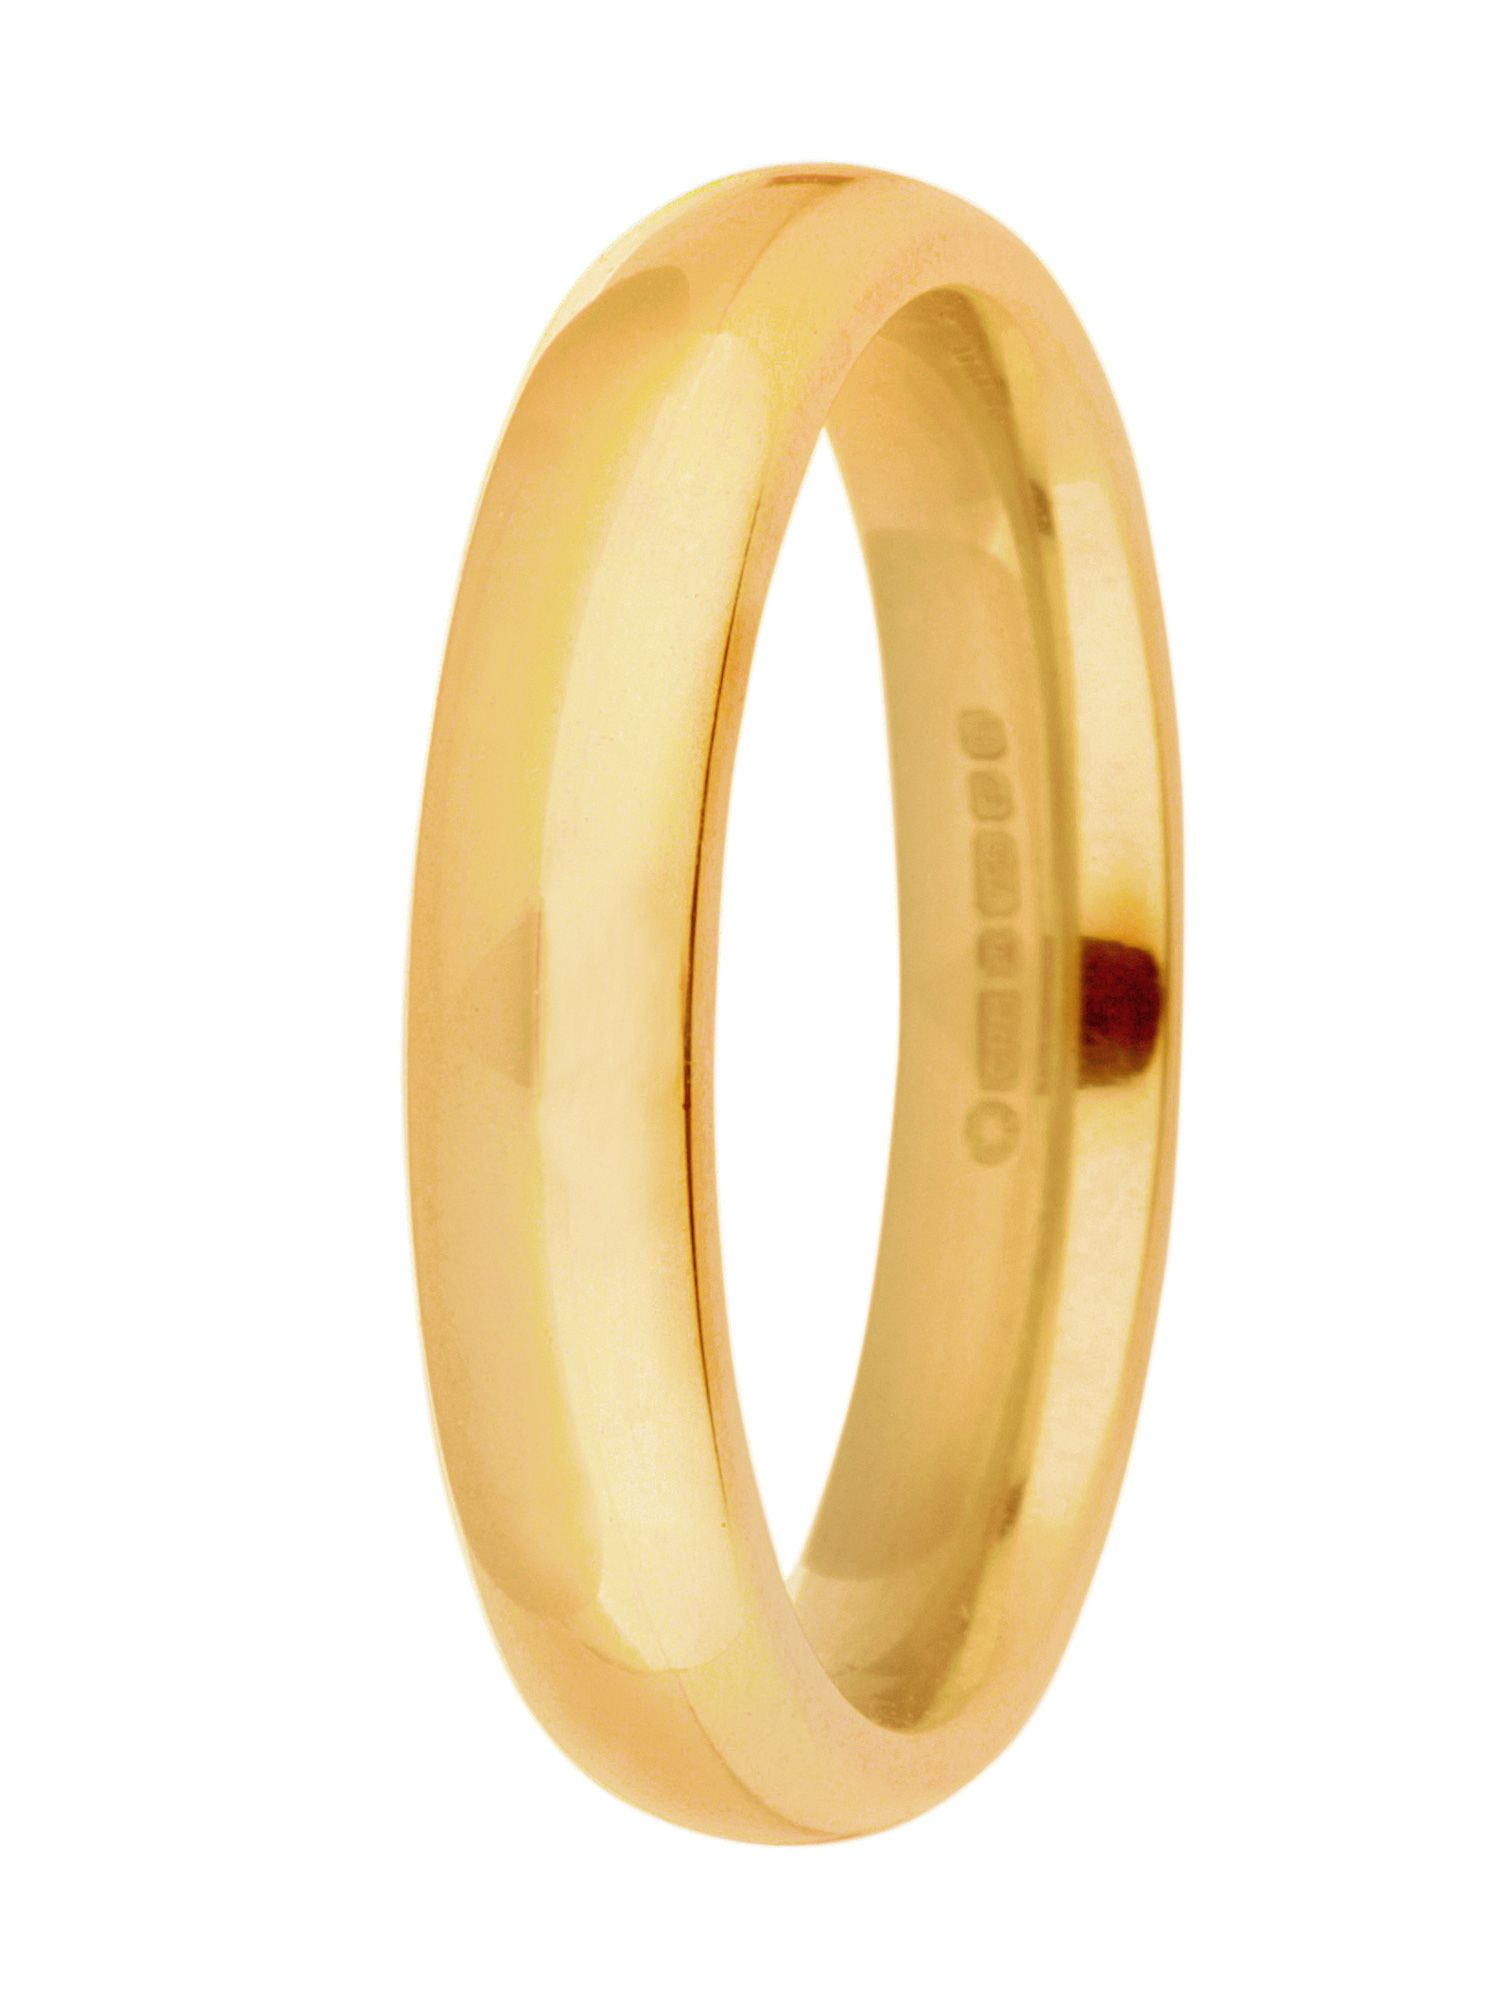 Brides 18ct gold 4mm court wedding ring - Gold